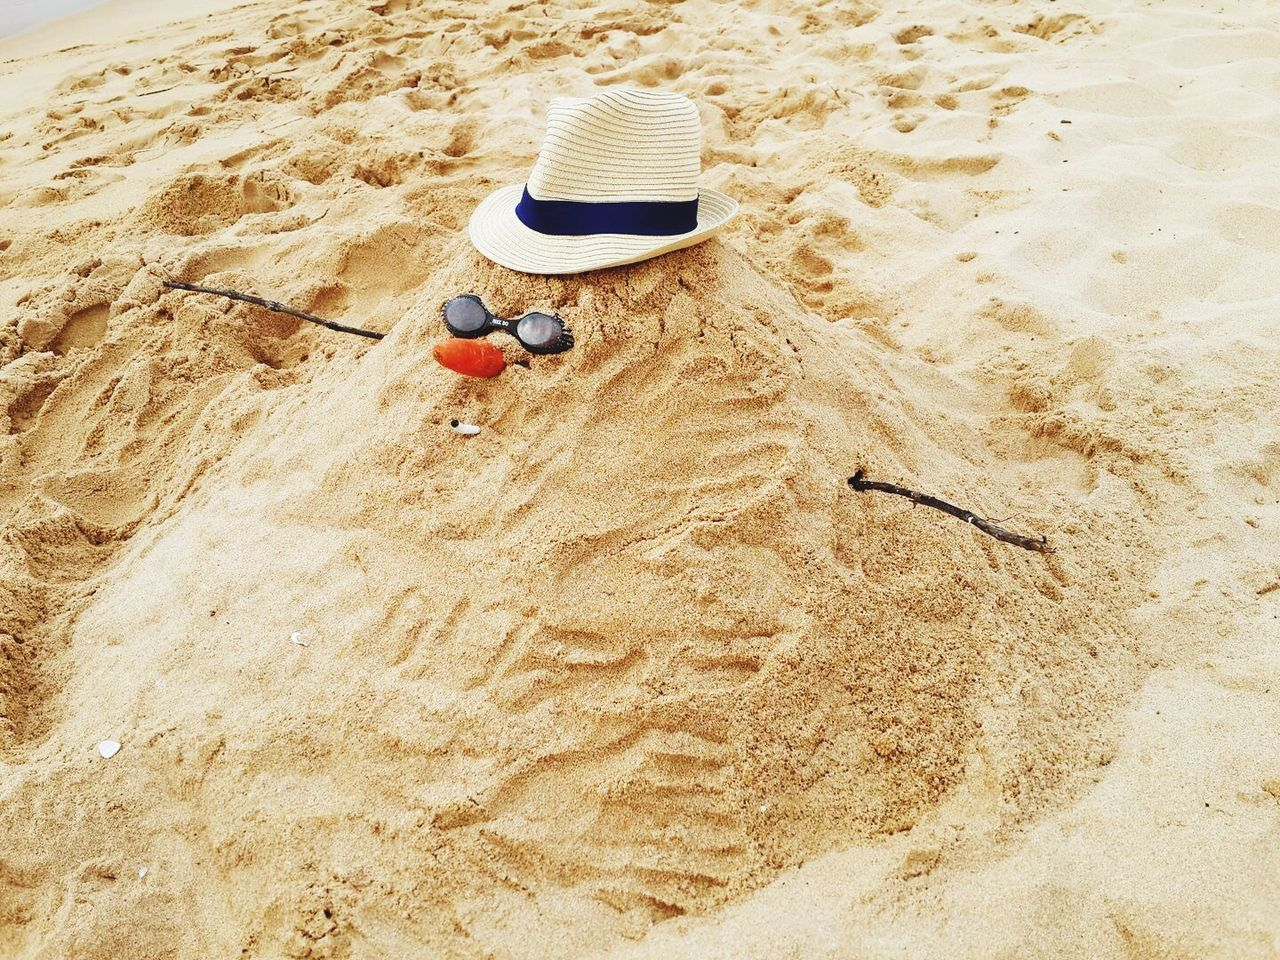 sand, beach, high angle view, vacations, day, nature, childhood, outdoors, sea, playing, flying, one person, sand pail and shovel, people